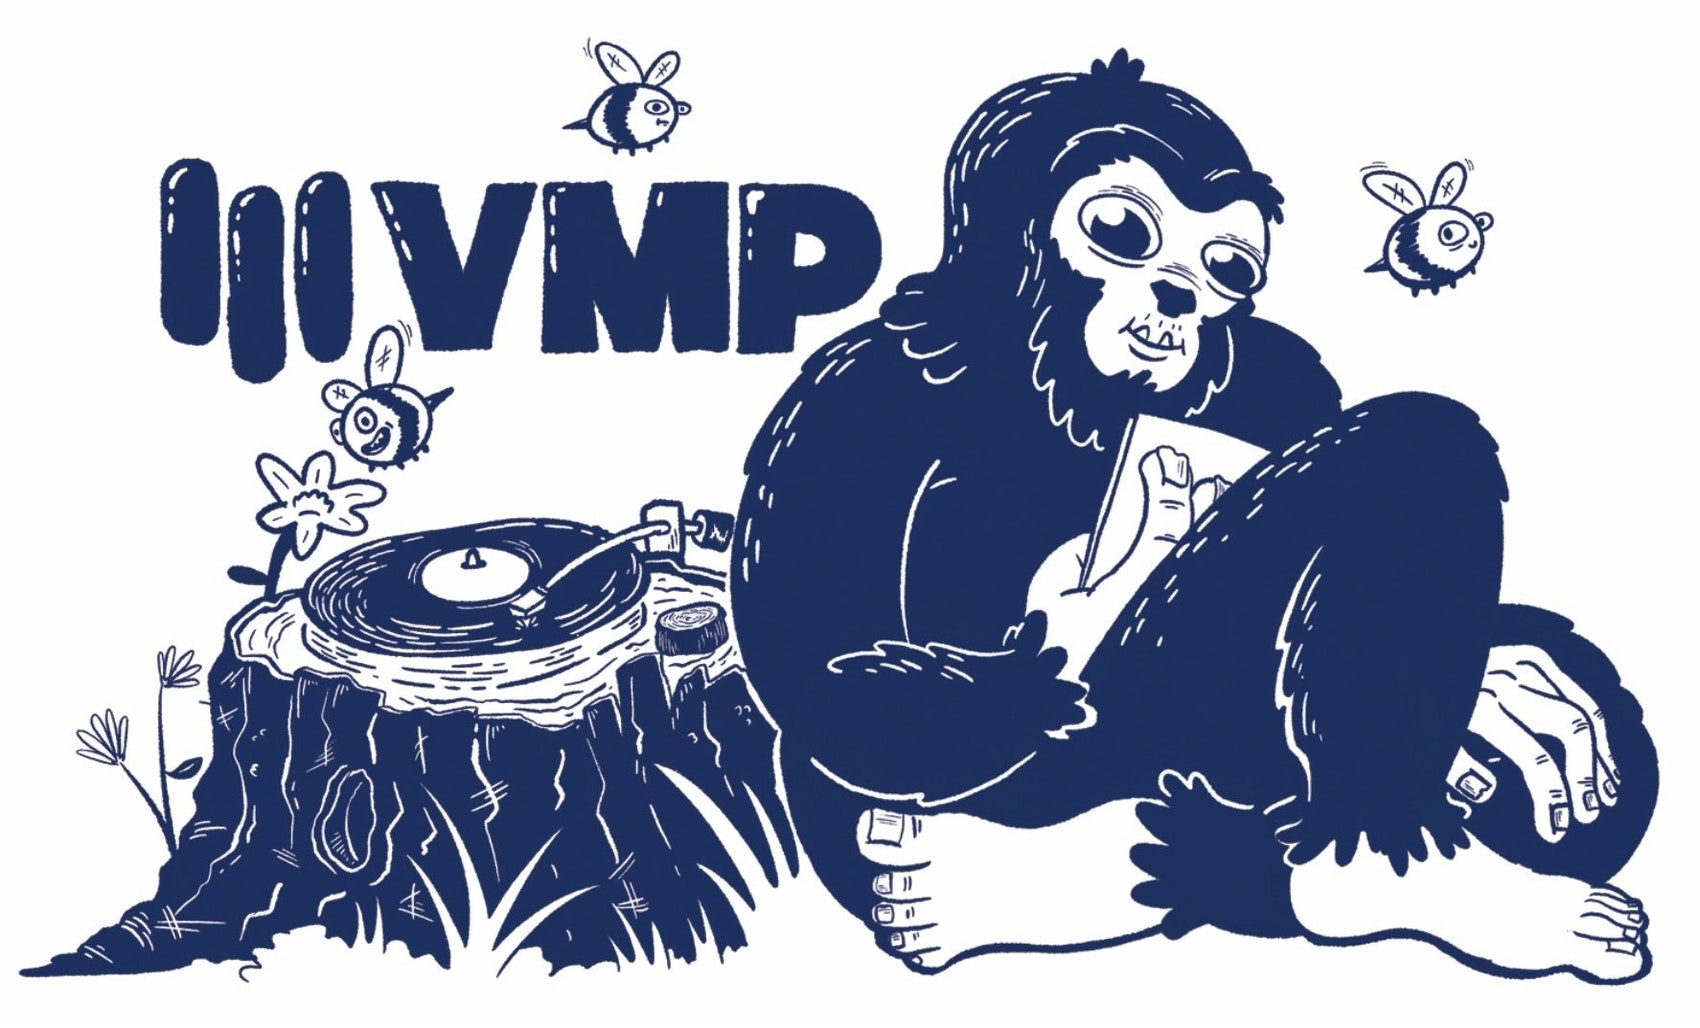 Winning VMP Sticker Design #1. Designed by: Kodi Sershon